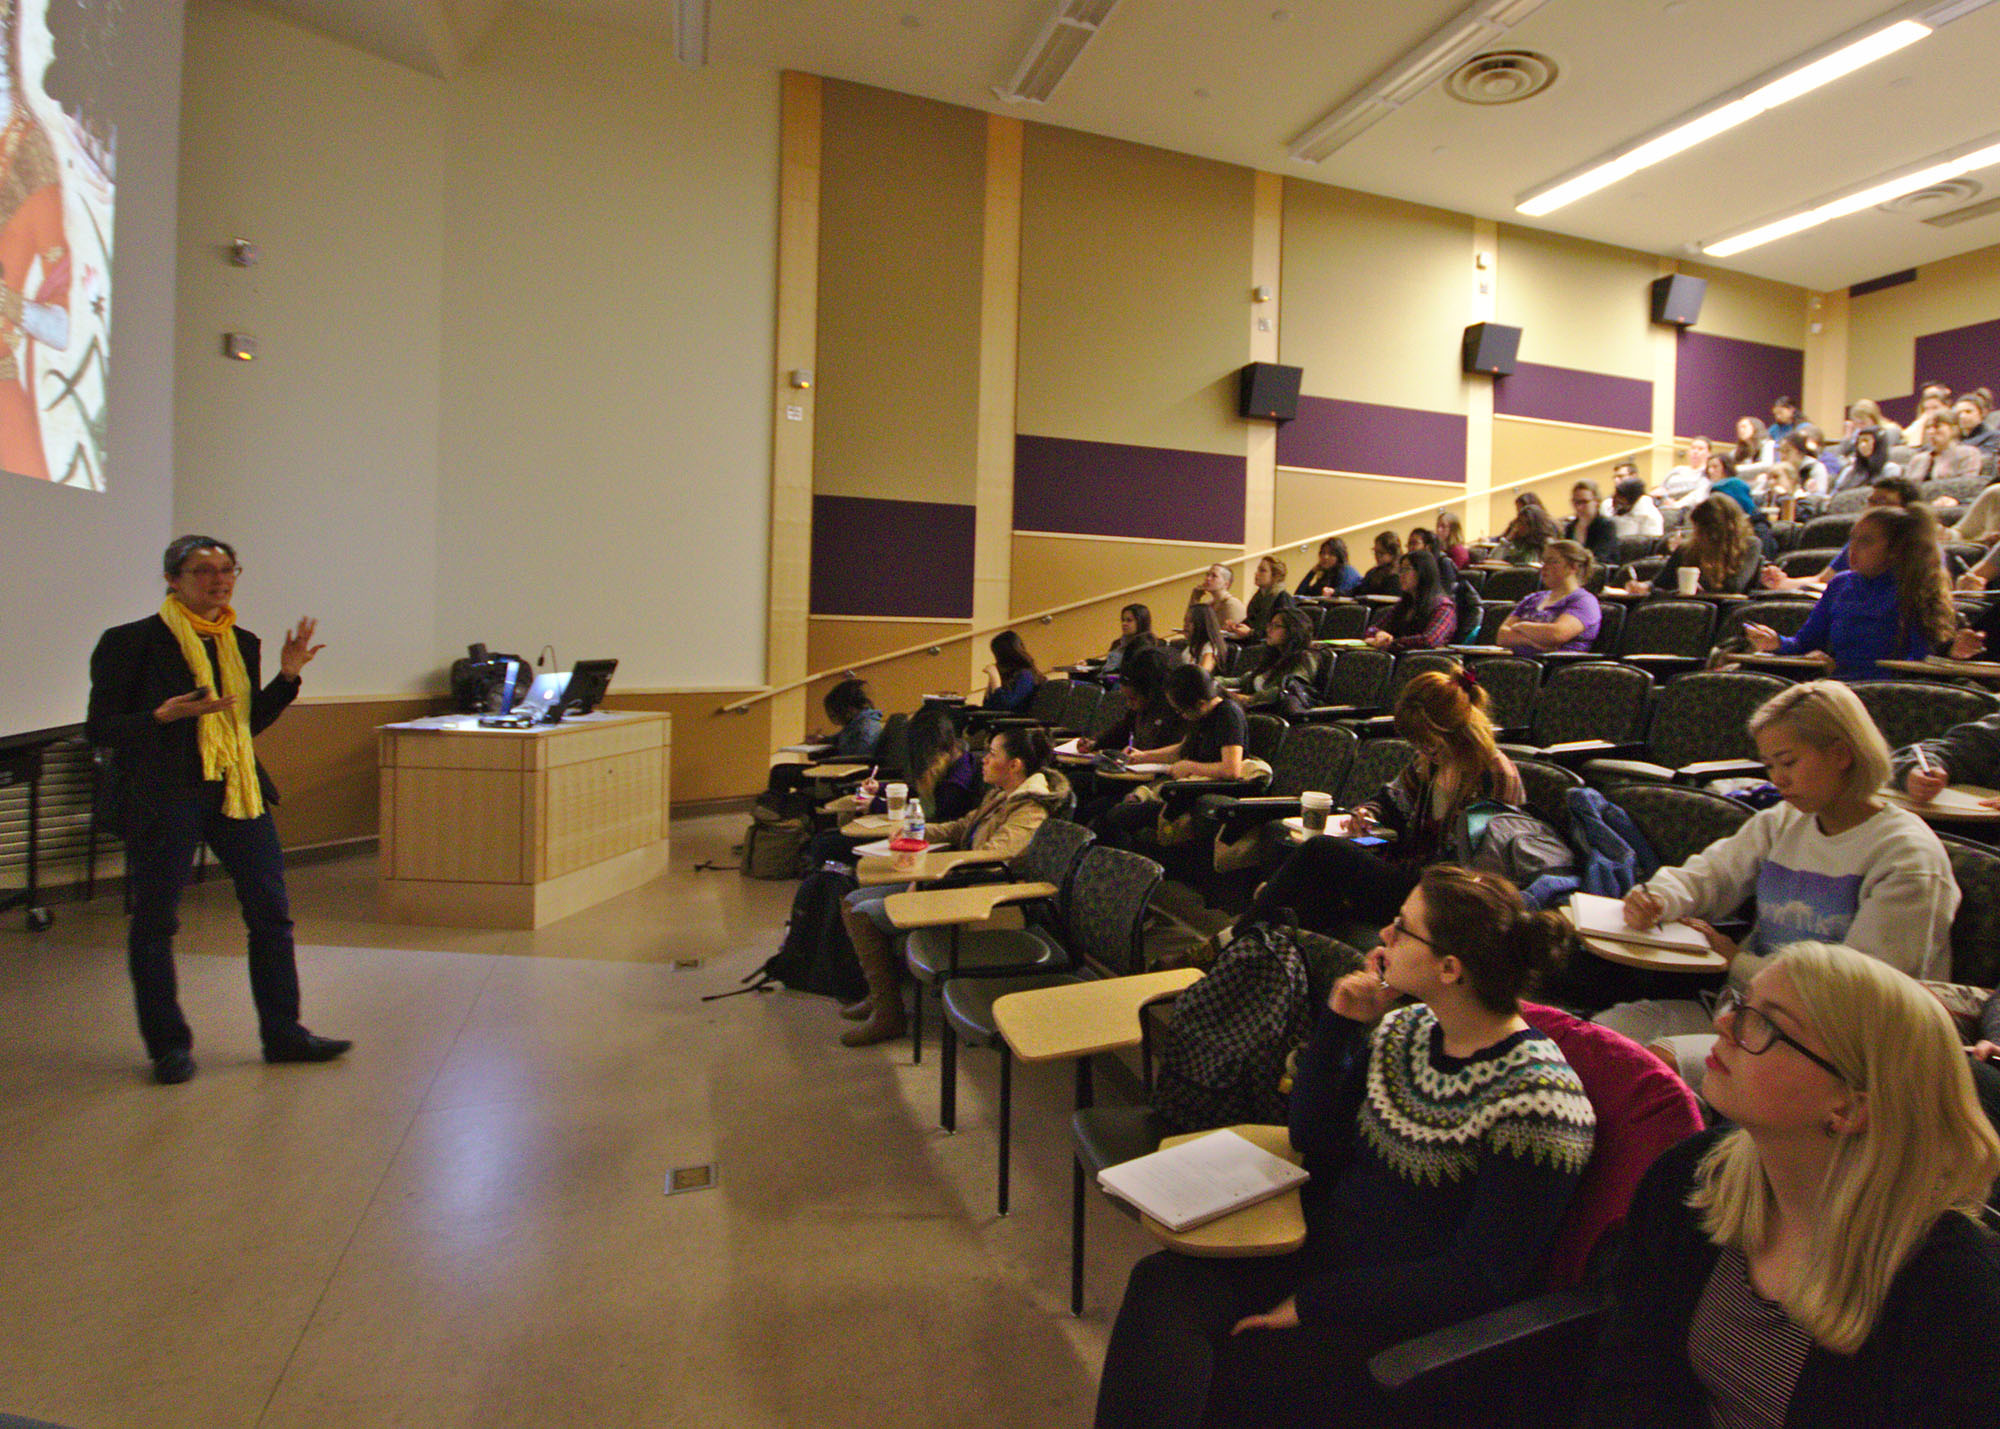 Global_Feminist_Art_class_at_University_of_Washington,_2015-04-23_06